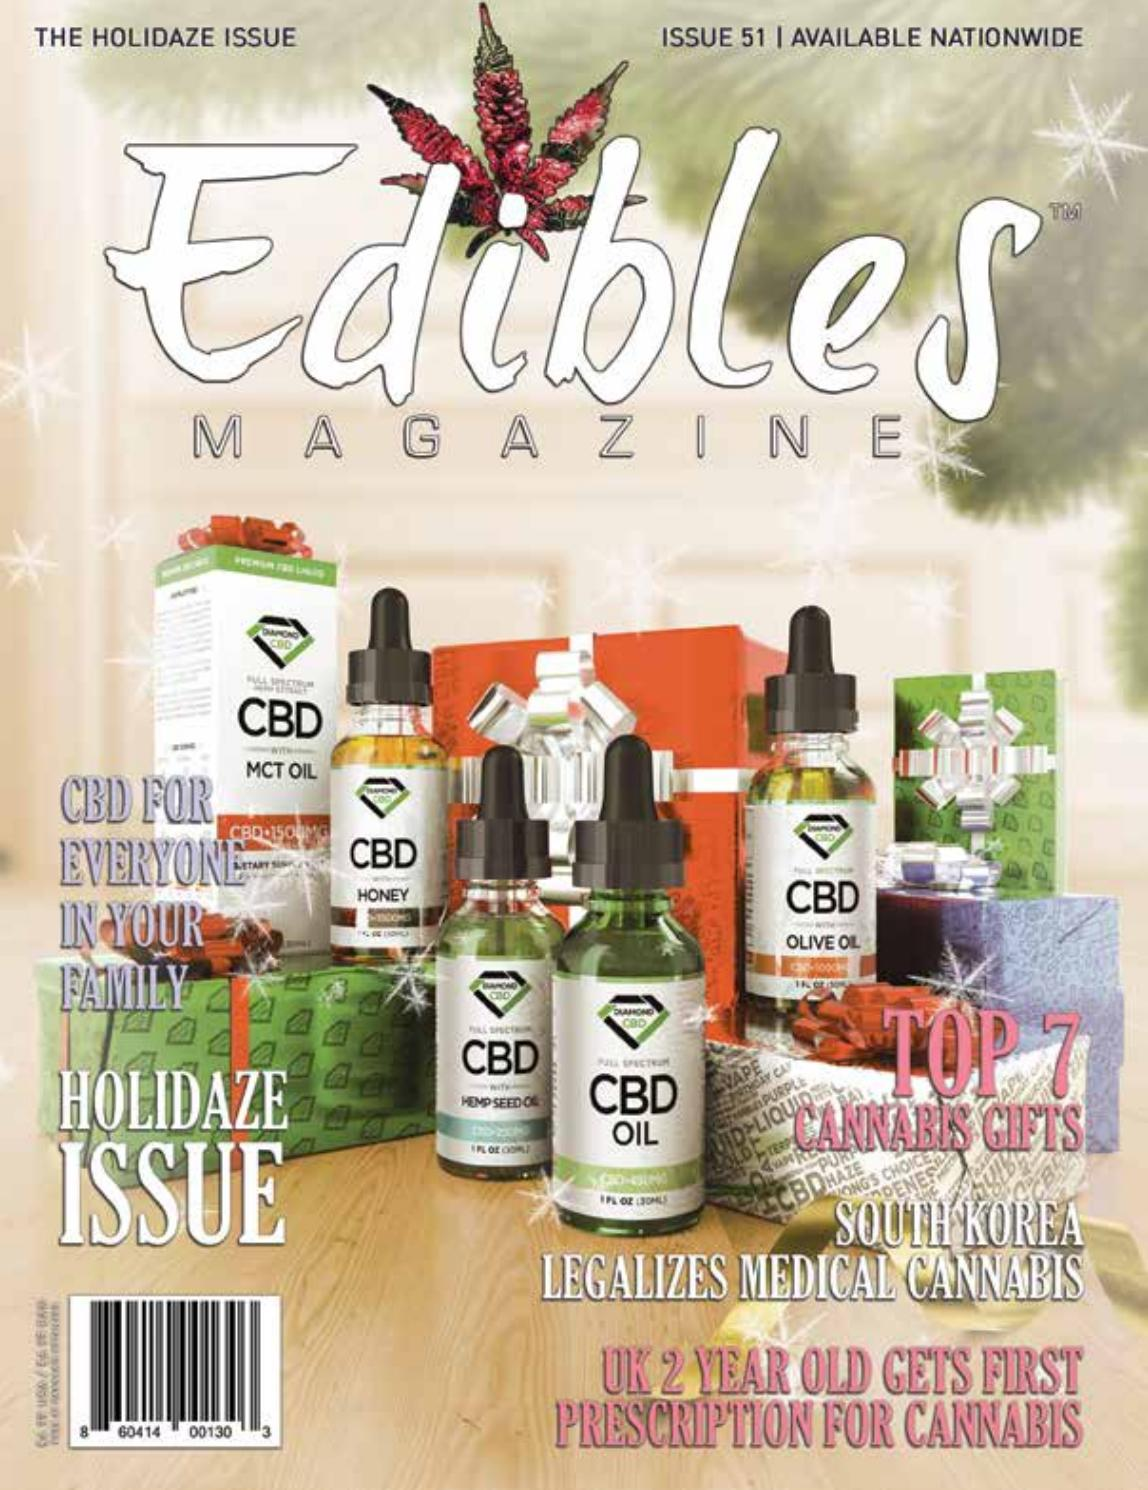 Issue 51 The 2018 Holidaze Issue